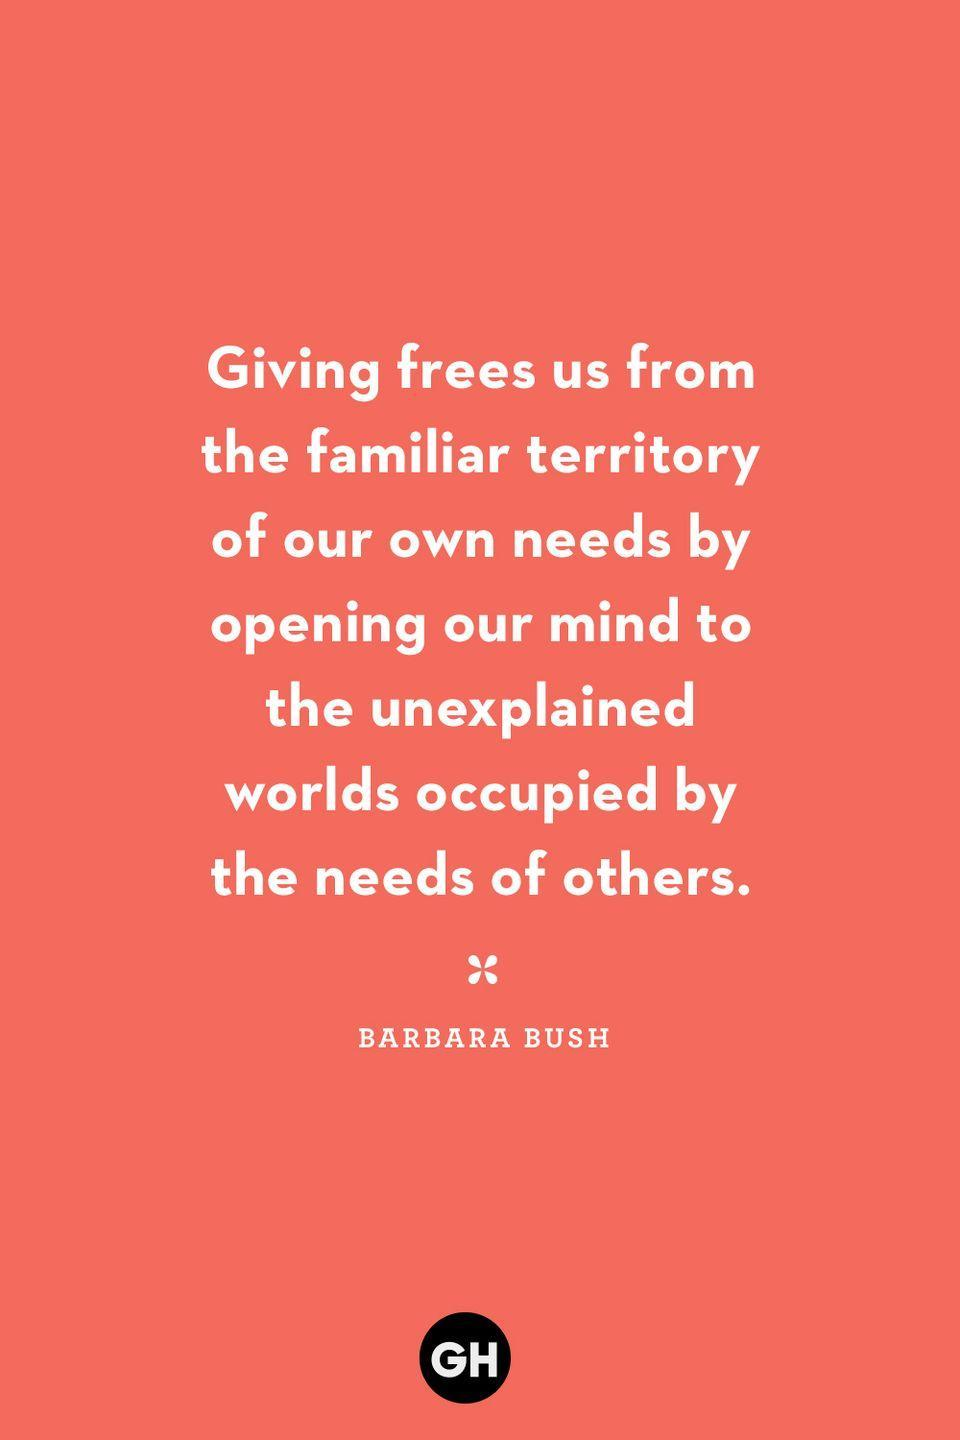 <p>Giving frees us from the familiar territory of our own needs by opening our mind to the unexplained worlds occupied by the needs of others.</p>